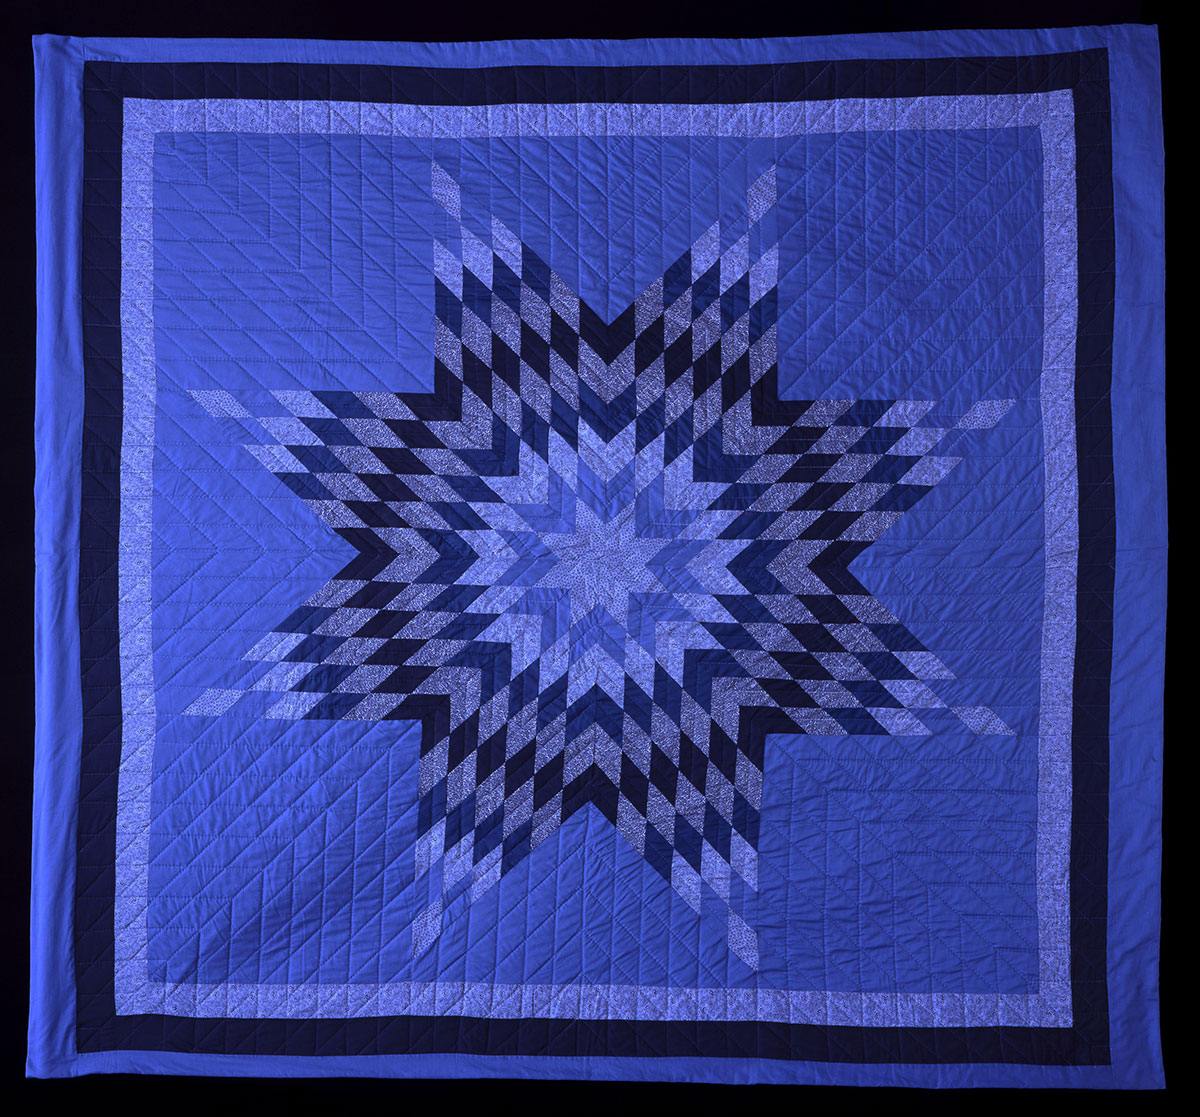 Star quilt made by Freda Goodsell (Oglala Lakota), 2000. Museum purchase with funds provided by the Pilot Foundation. NA.320.144